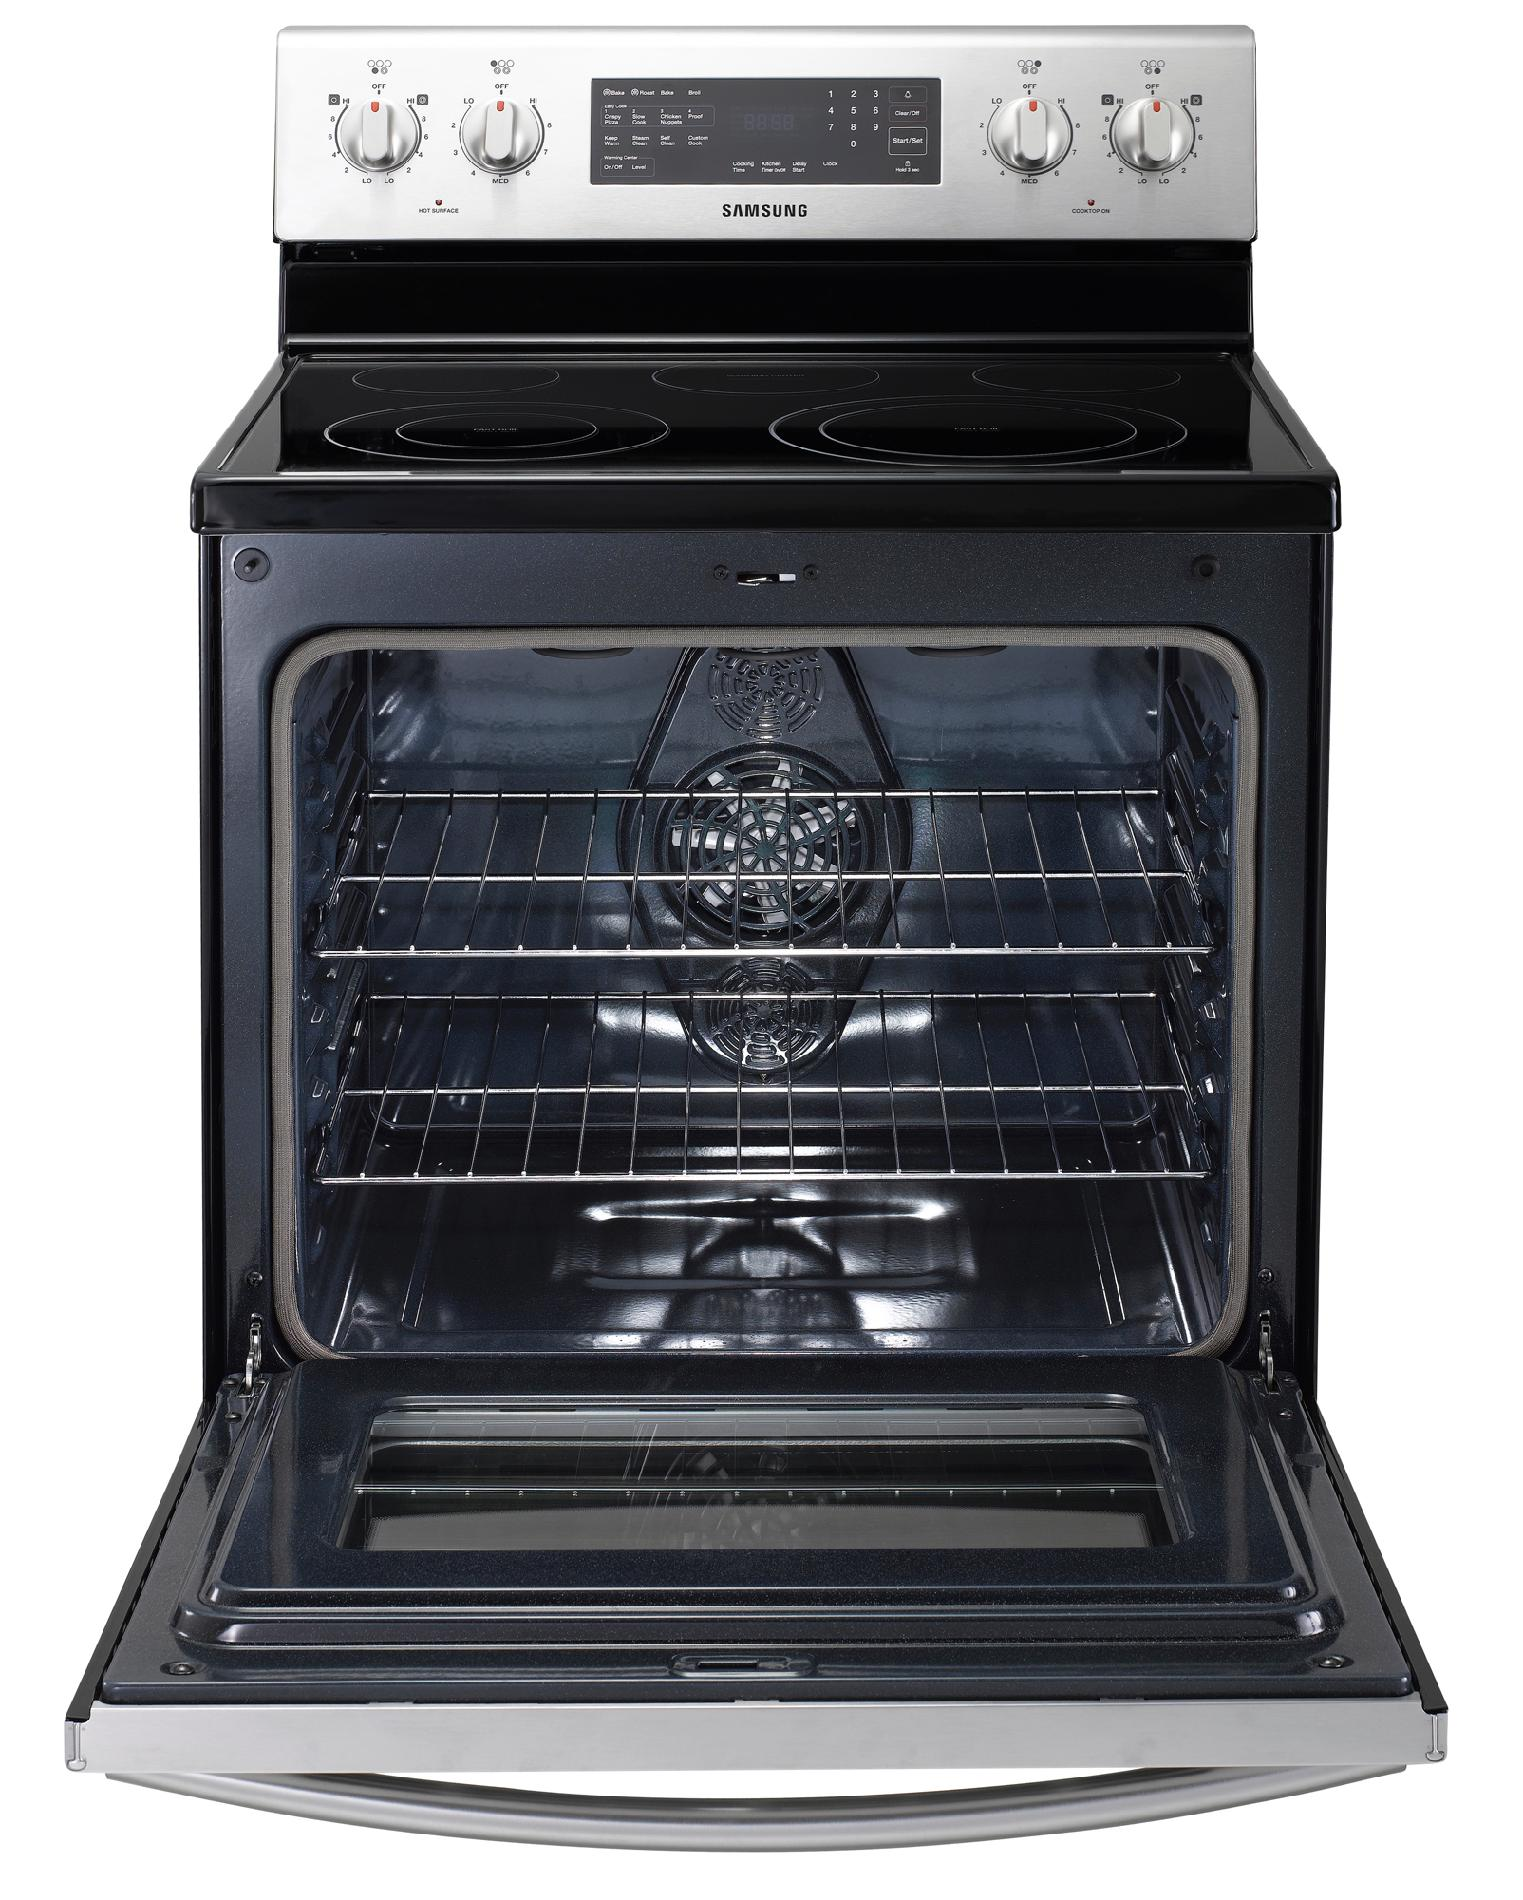 Samsung 5.9 cu. ft. Electric Range w/ Convection - Stainless Steel